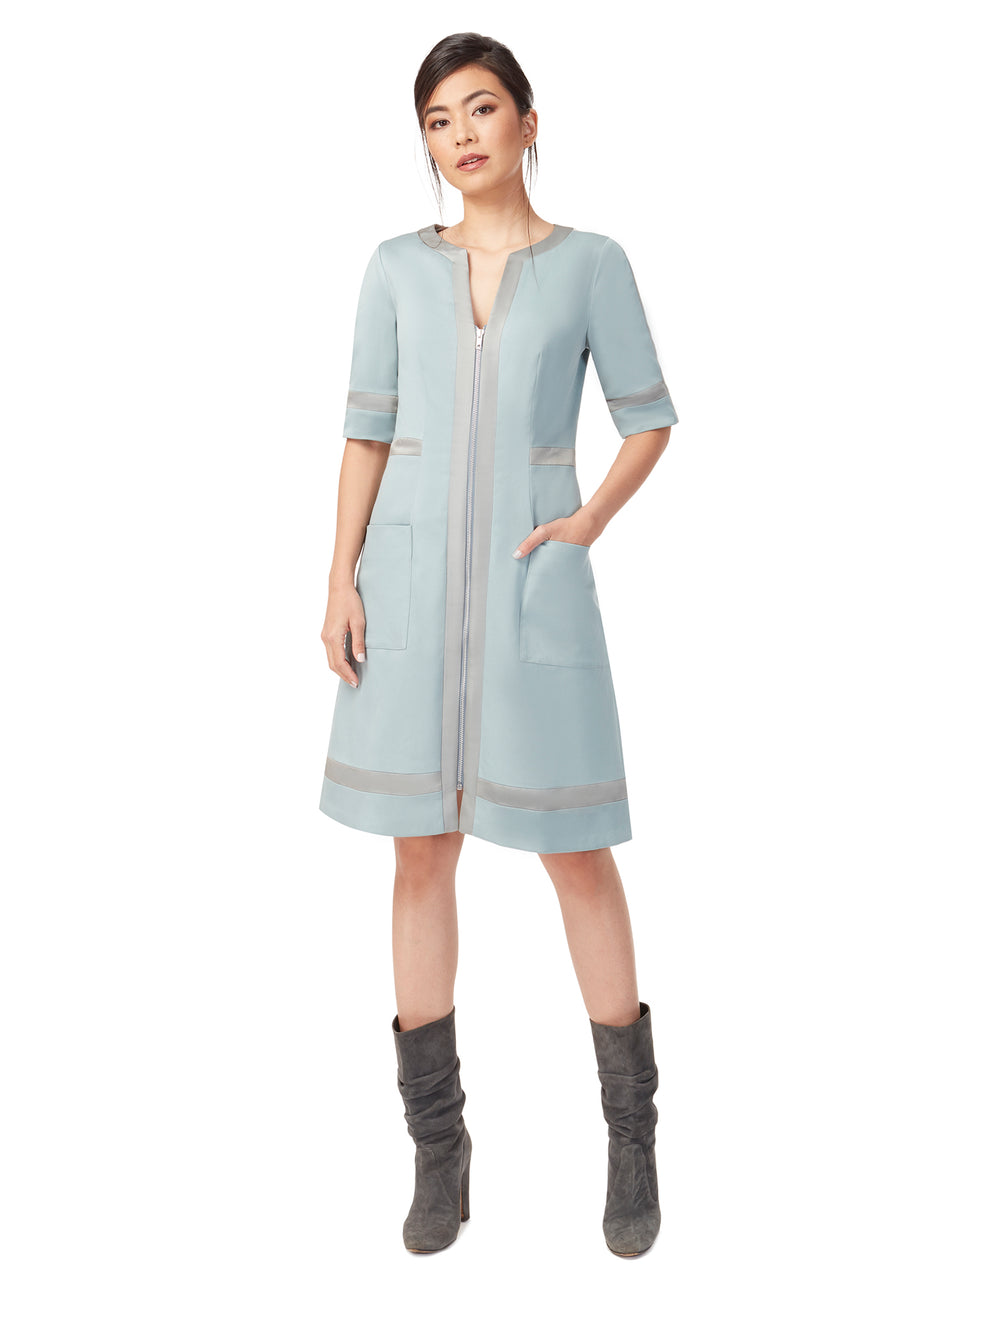 D163_RUSH_Zip-Front Coat/Dress